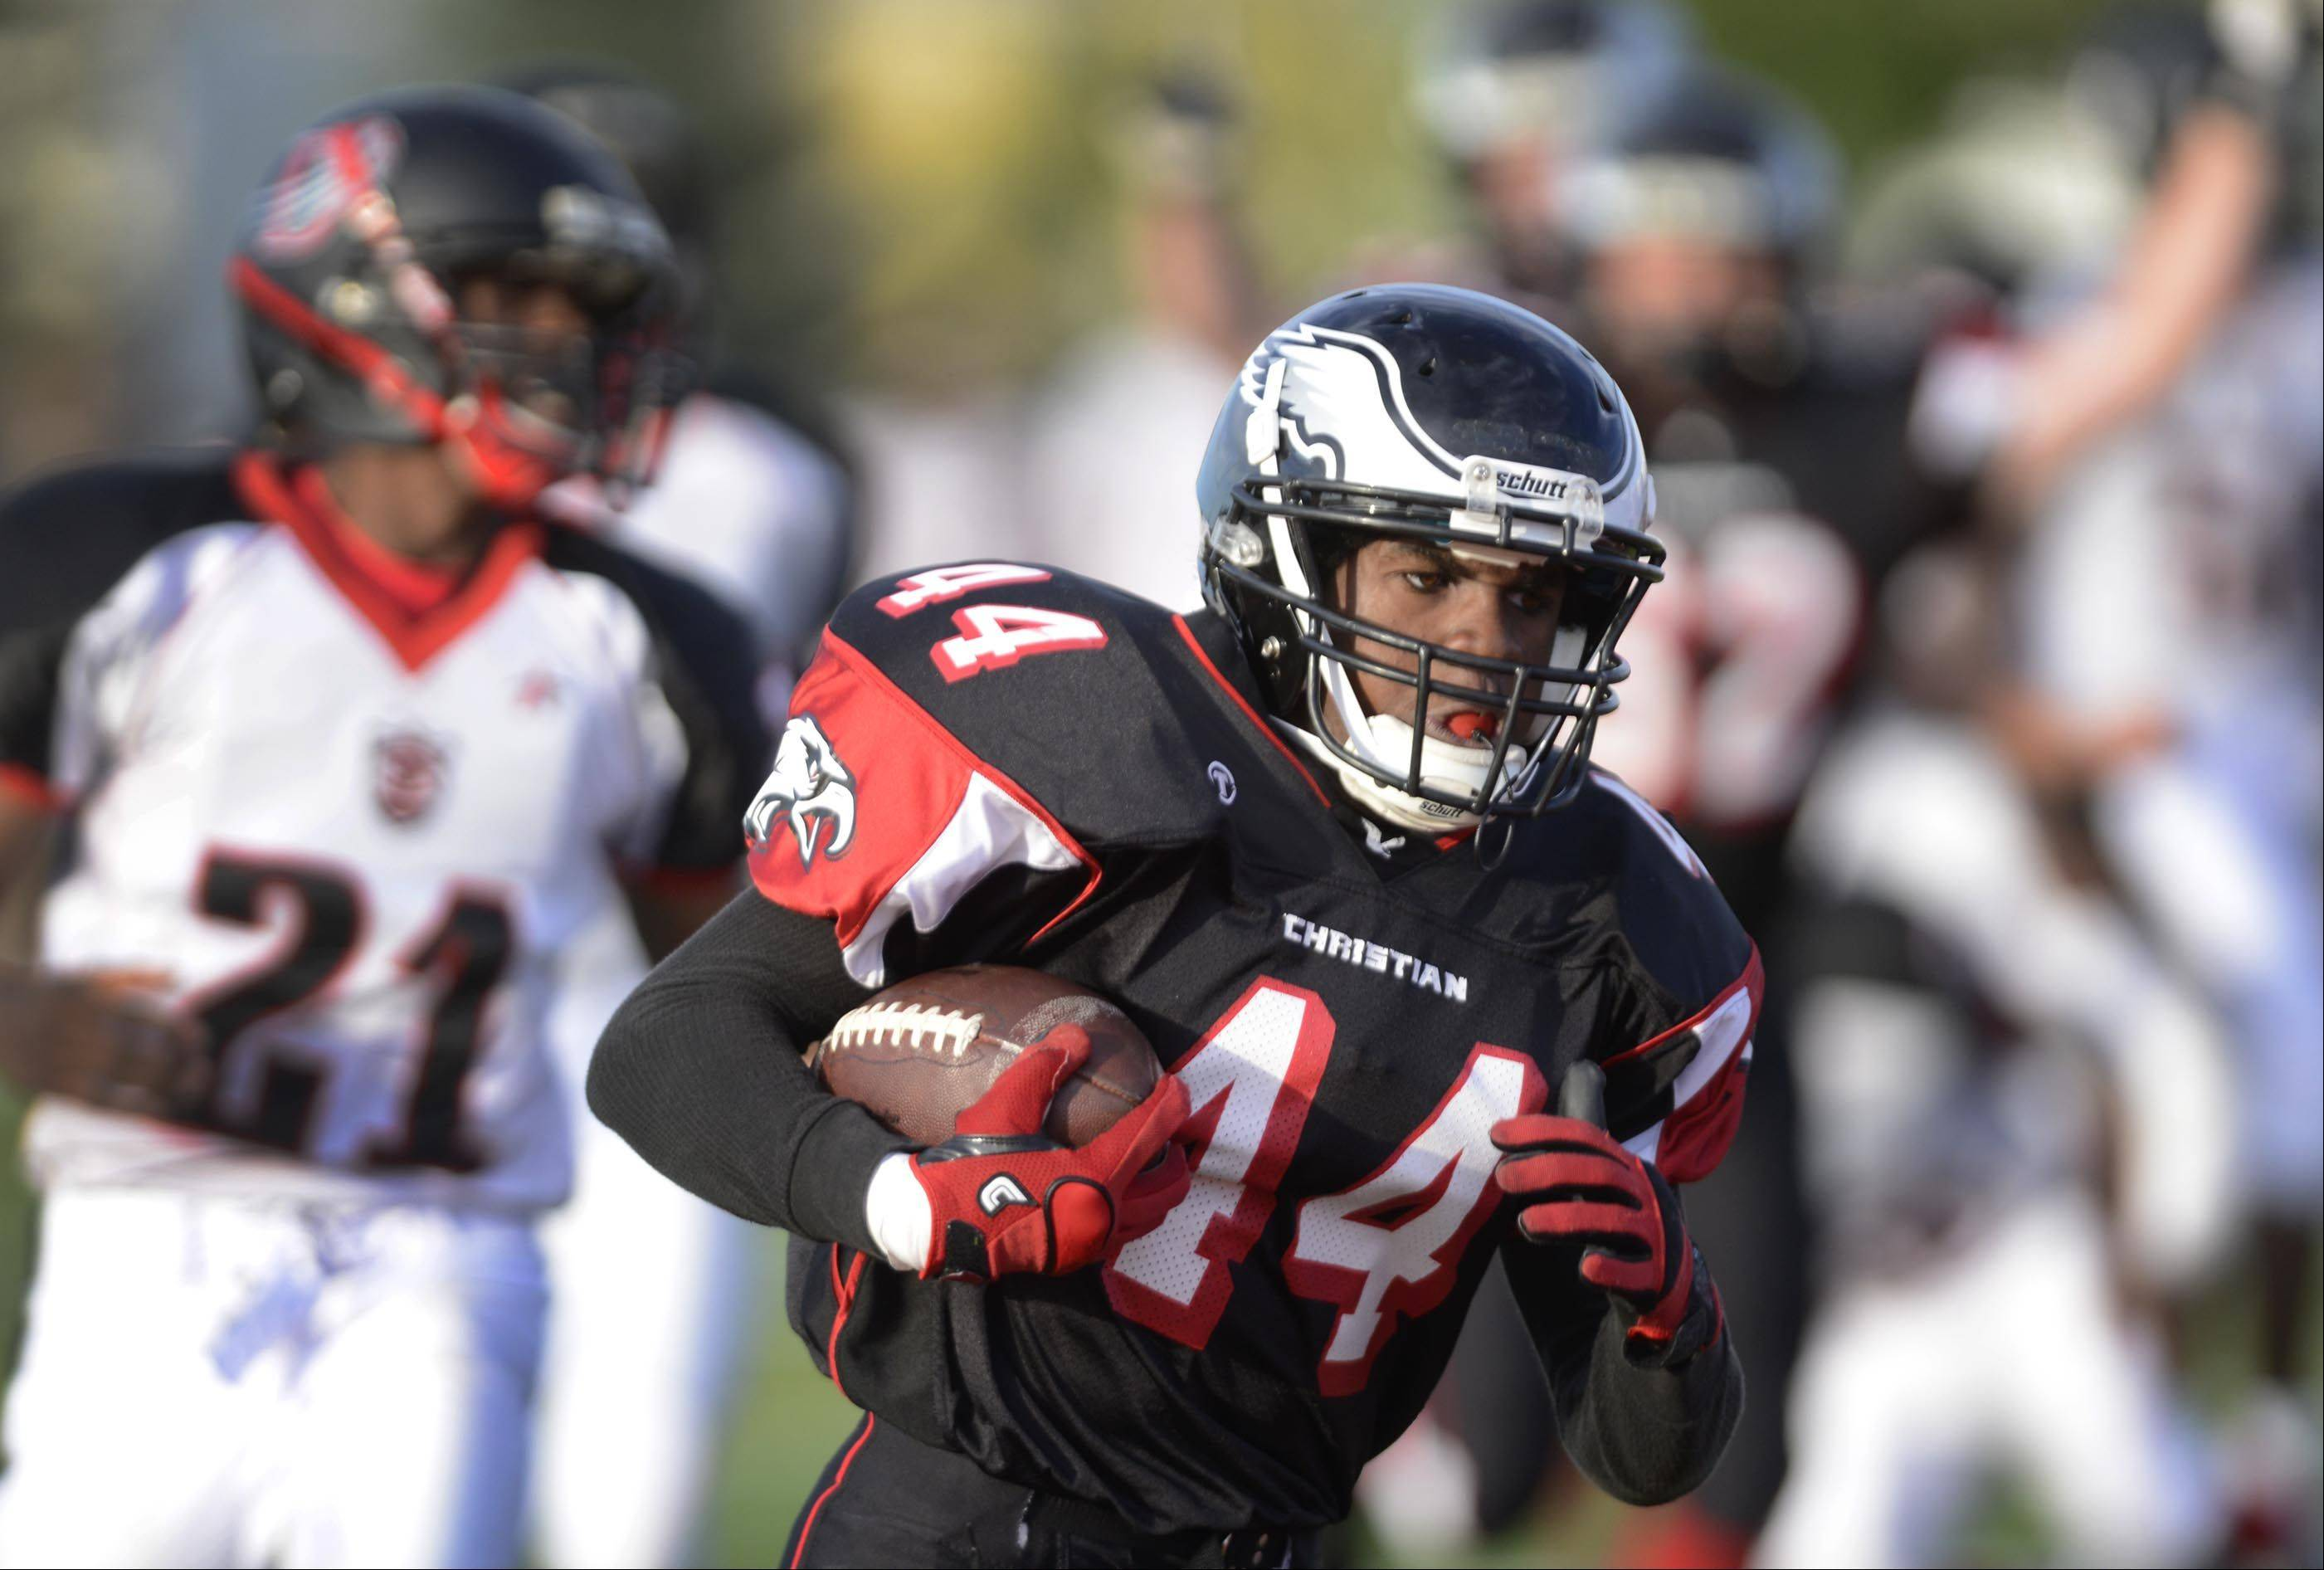 Aurora Christian's Legend Smith scores one of his first half touchdowns against DuSable in a rare Tuesday game in Aurora.